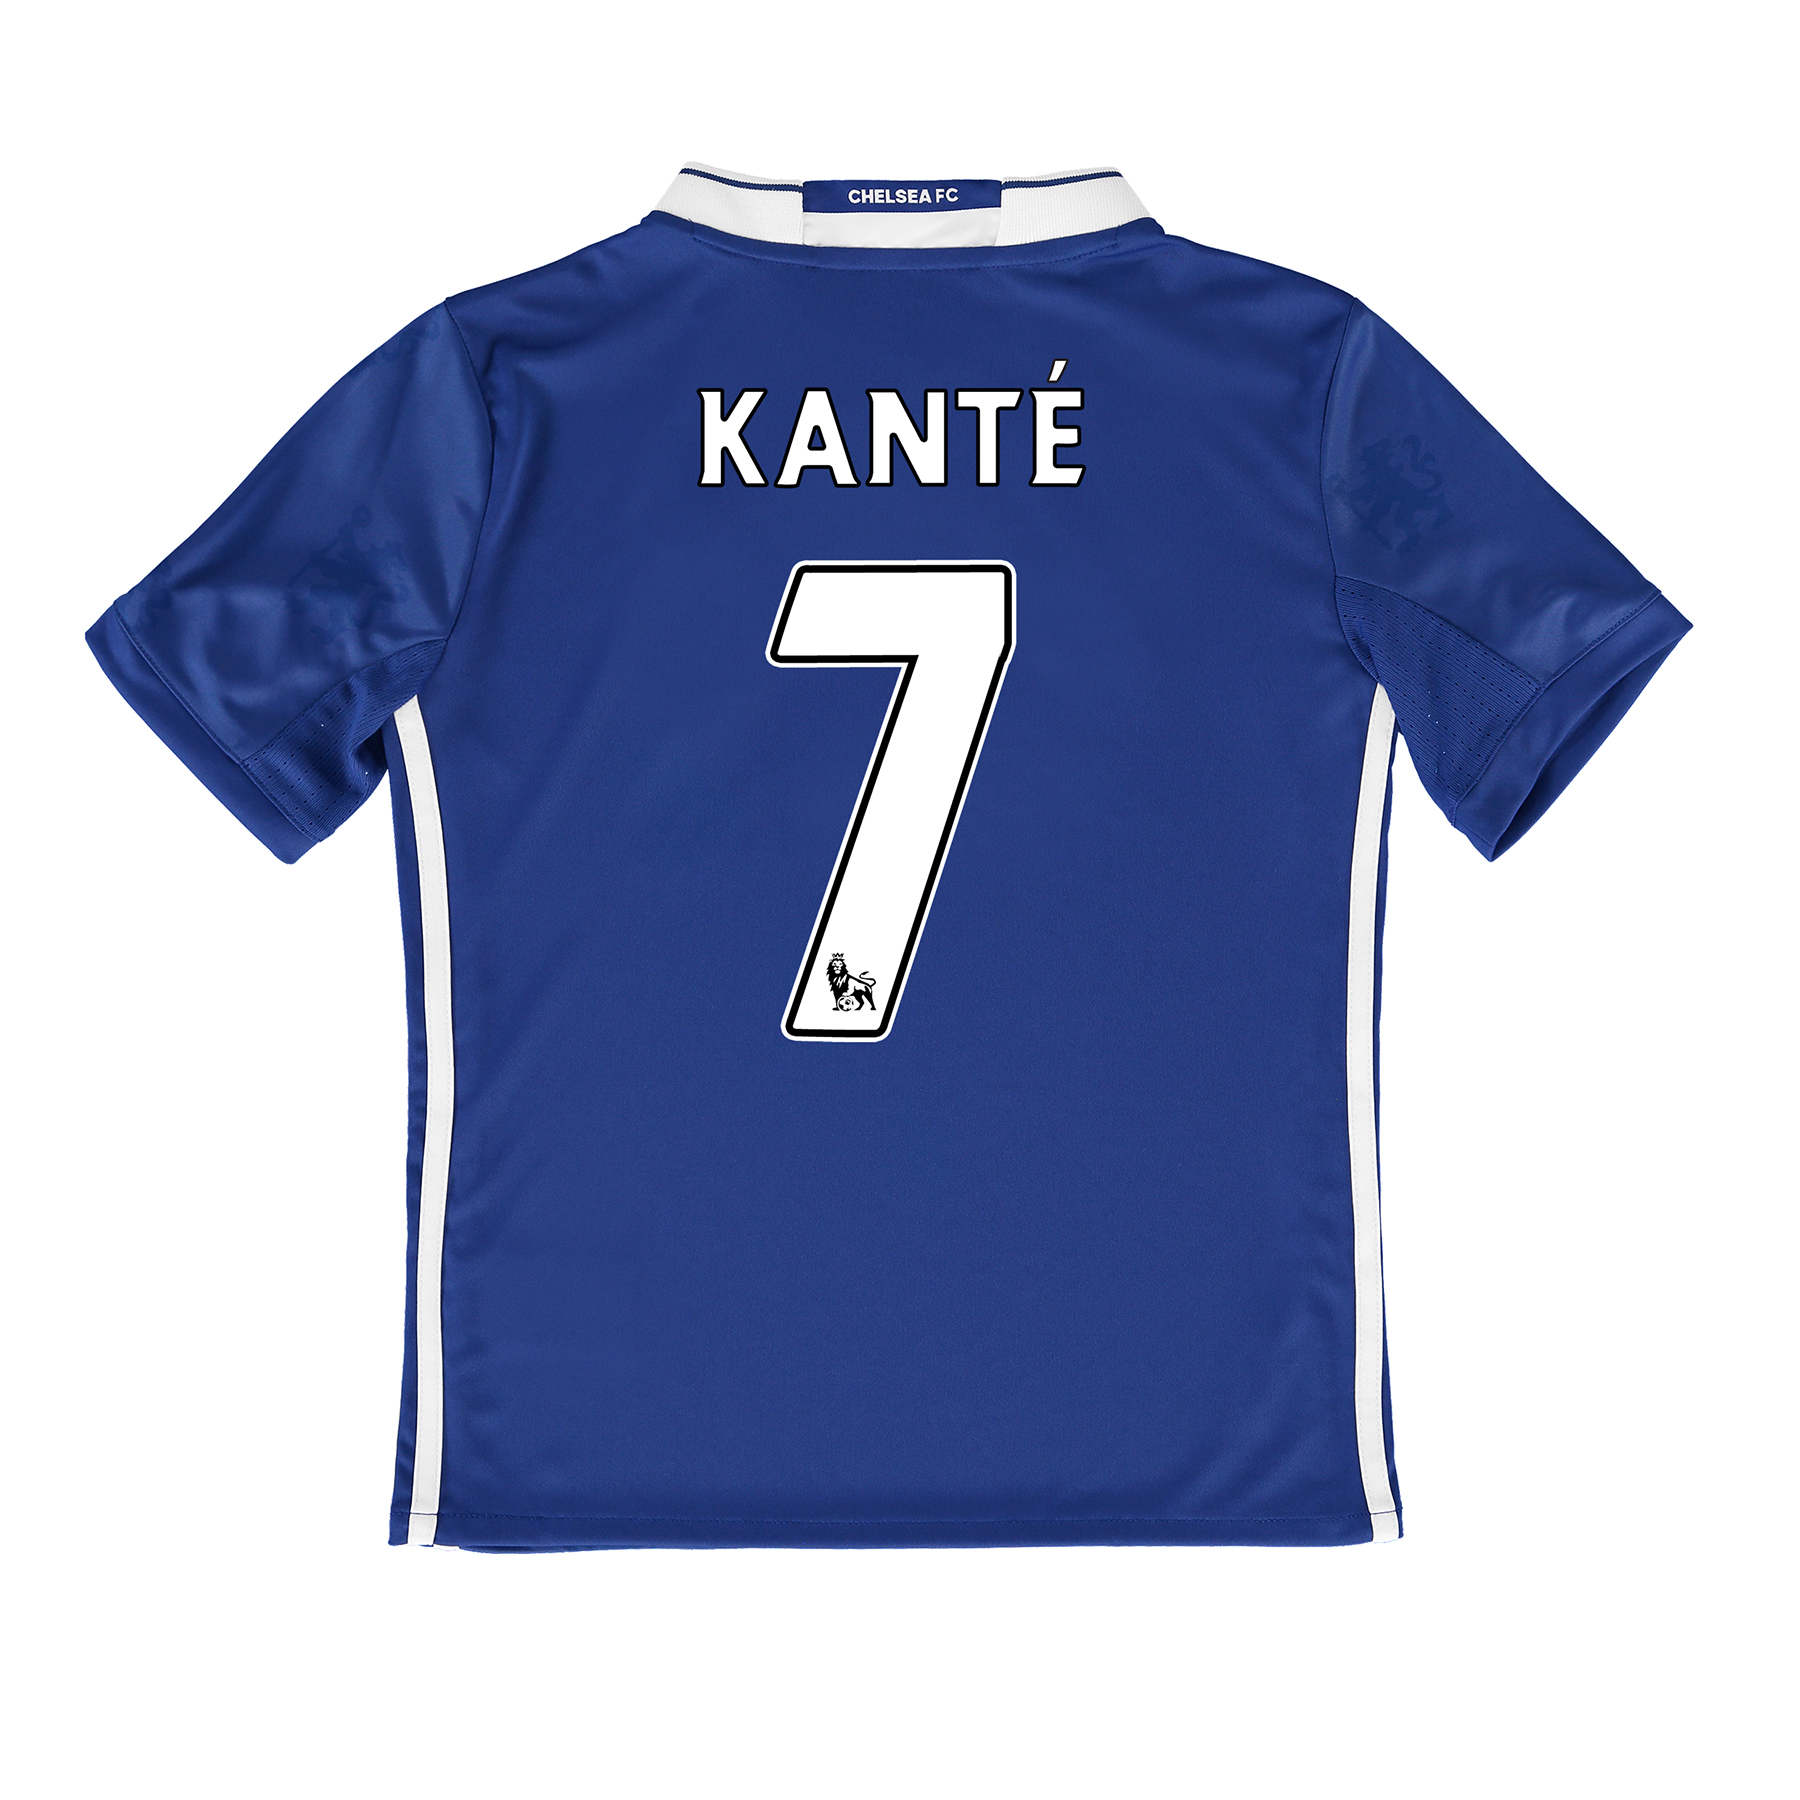 Chelsea Home Shirt 2016-17 - Kids   Inspired by tradition and shaped by legacy, the official Chelsea Home Shirt 2016-17 - Kids restores a classic Stamford Bridge image, with its vintage v-collar drawing allusion to Chelsea sides of yesteryear.   With the club crest's central lion motif forming the basis of a unique, all-over pattern print, the 2016-17 Chelsea kids' home jersey's Three Stripe branding features in a contemporary side placement, completing a winning mix of old and new for the Blues' renewed title challenge.   Benefits:   Climacool® heat and moisture management Printed fabric Club crest: woven badge Engineered Chelsea FC sign off on collar 100% recycled polyester with Kanté 7 printing